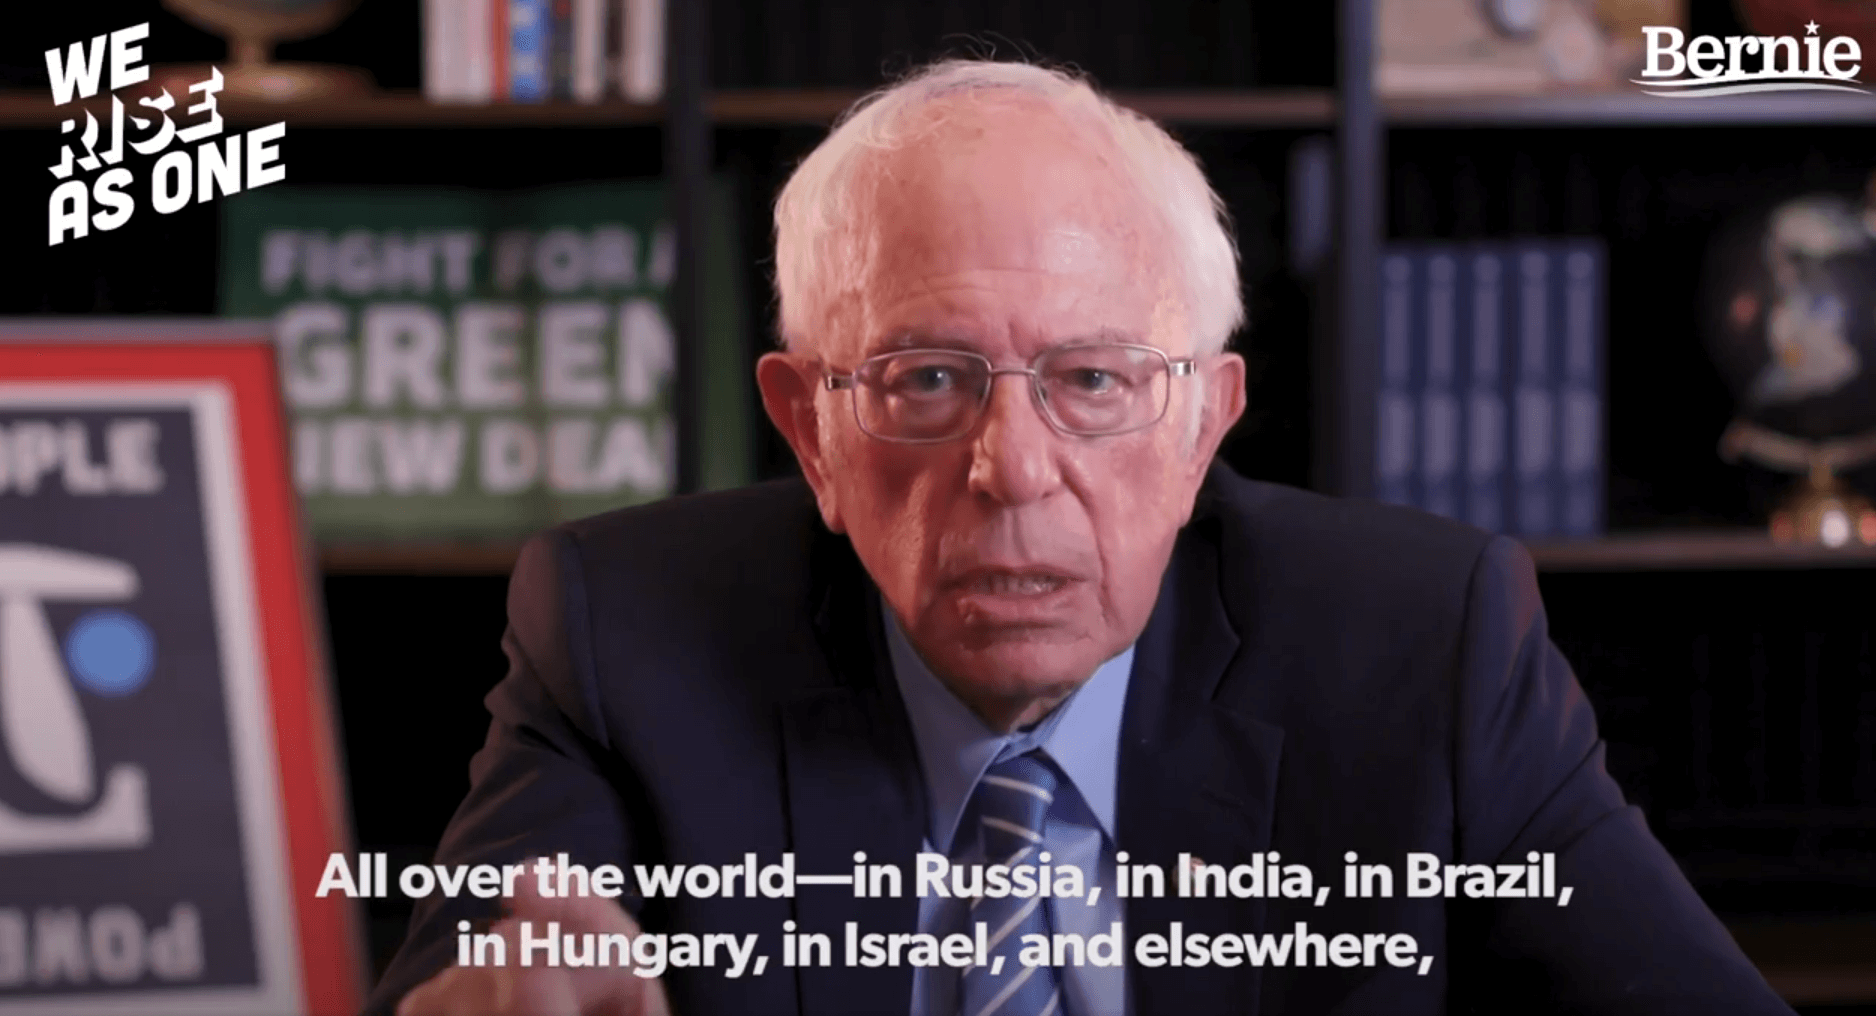 Bernie Sanders slams Israel's 'intolerant authoritarian' leaders — and links them to rise of white supremacy – Mondoweiss